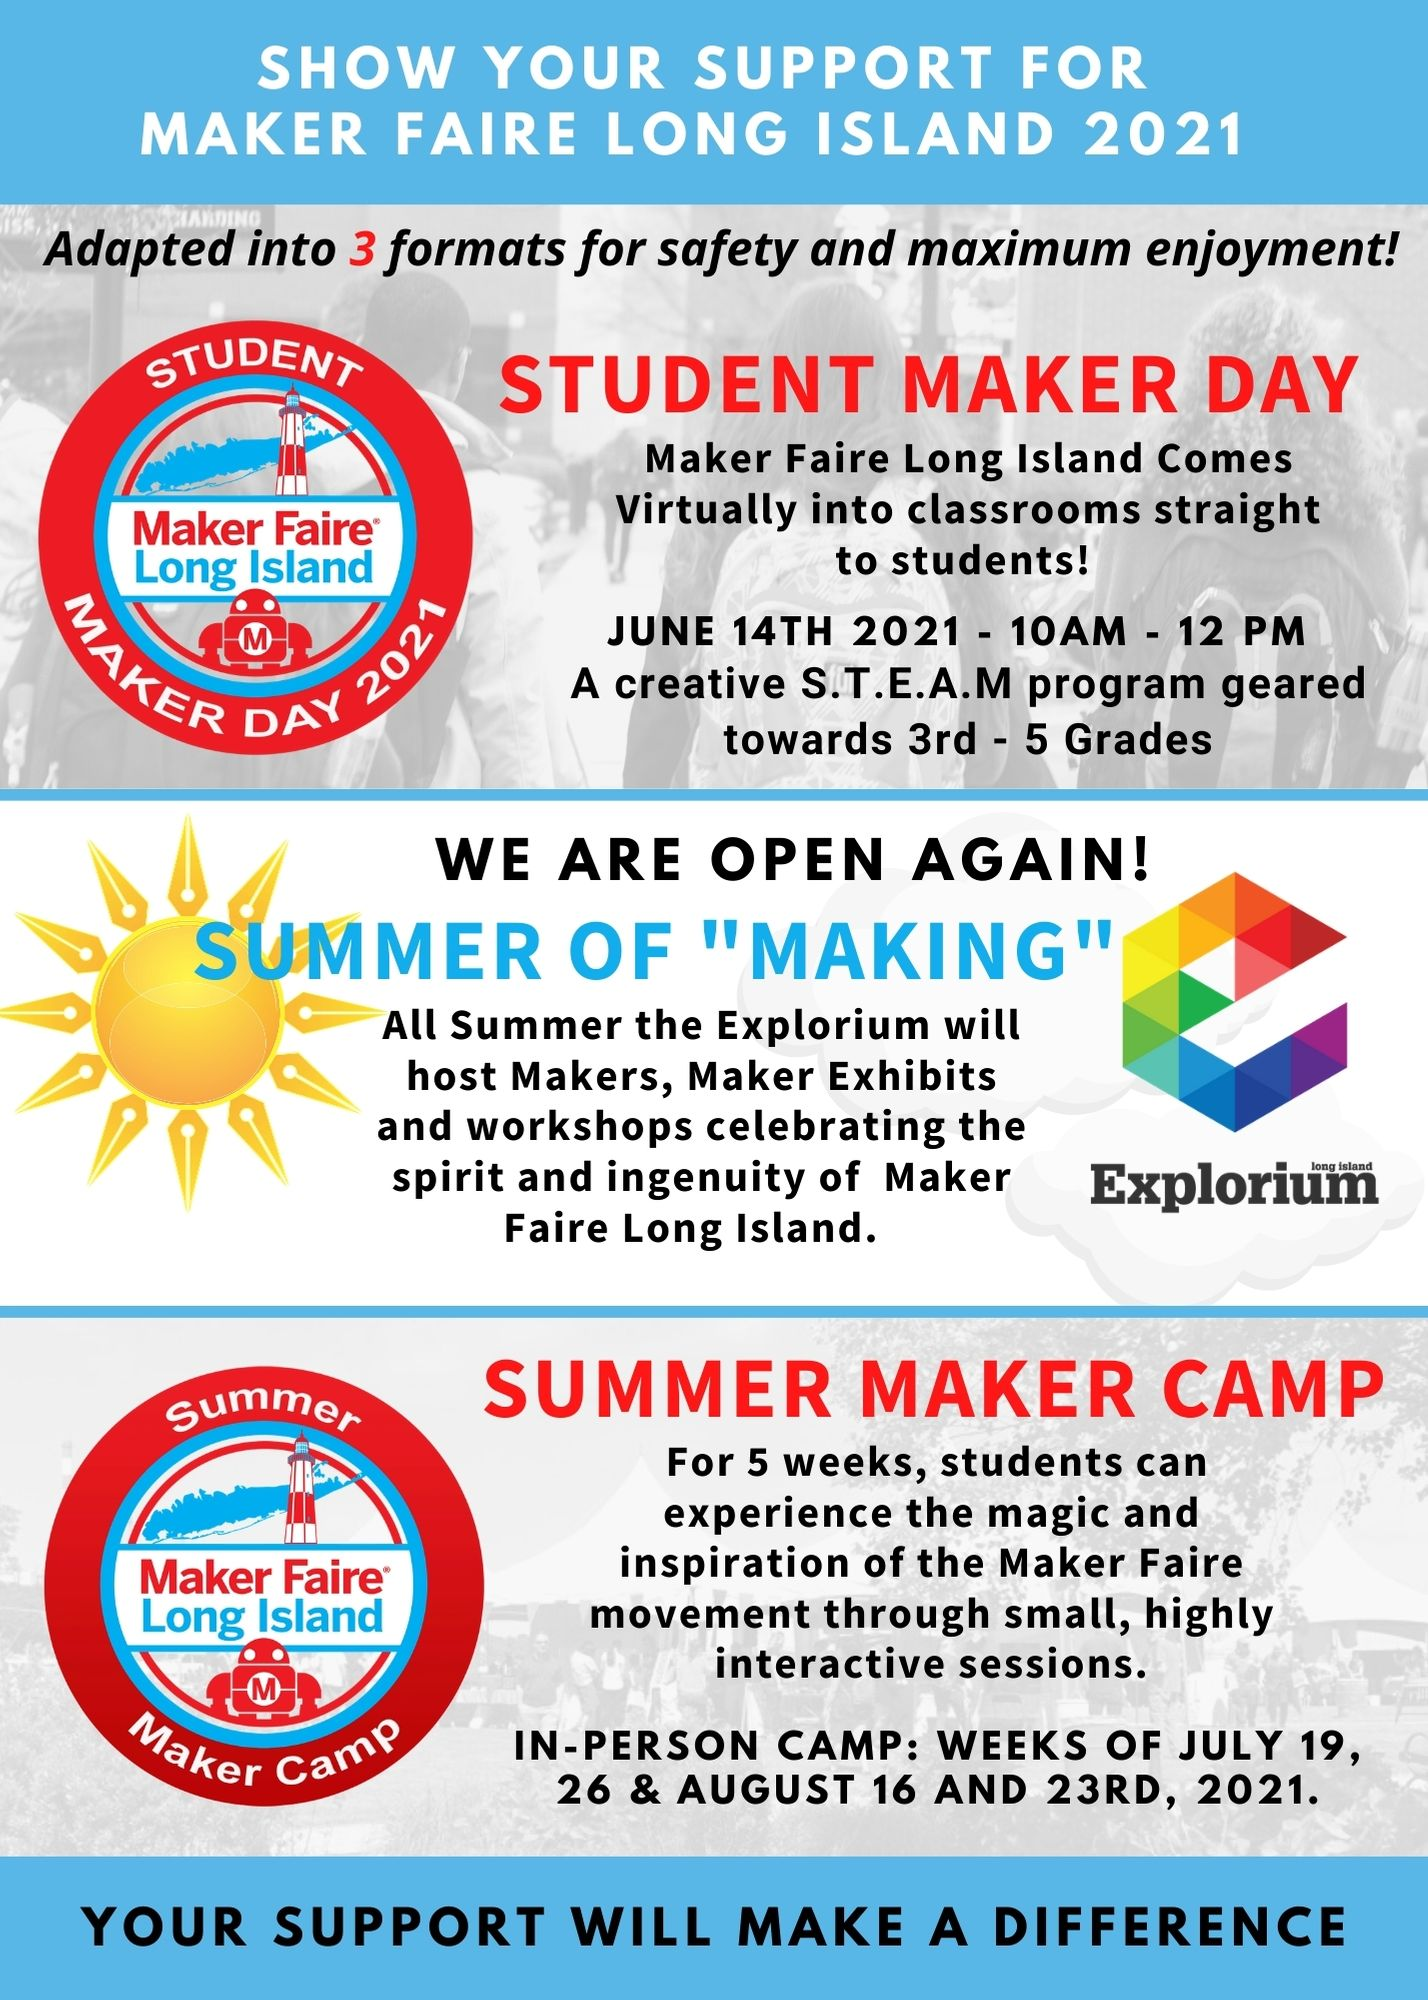 Summer Of Making at the Explorium Flyer